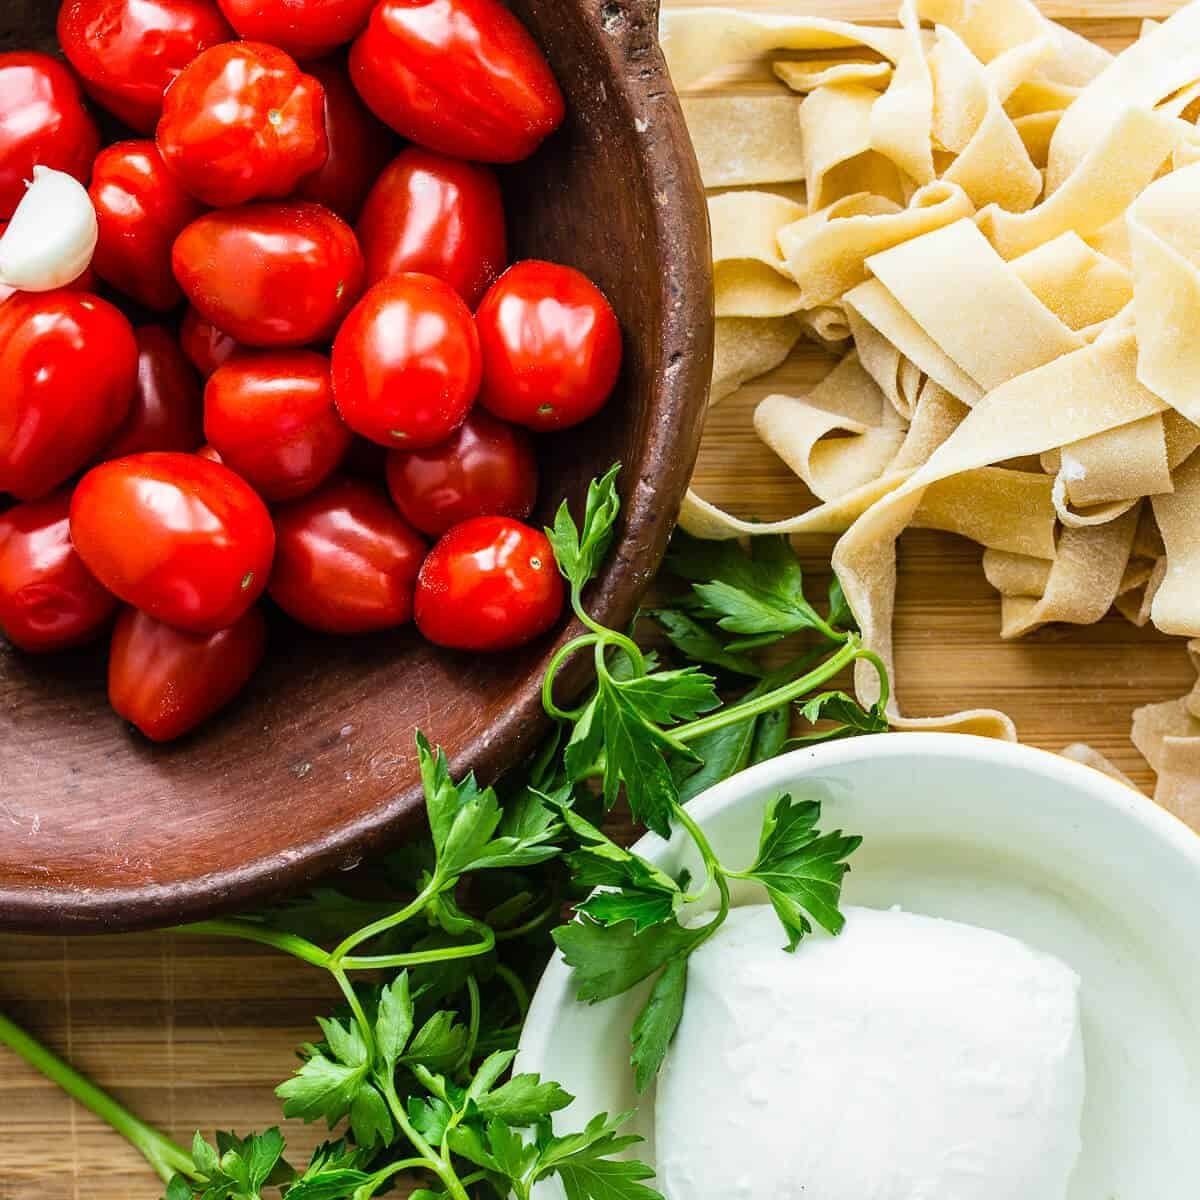 red cherry tomatoes in brown bowl on wooden chopping board with freshly made raw tagliatelle pasta, green parsley and fresh buffalo mozzarella ball in white bowl